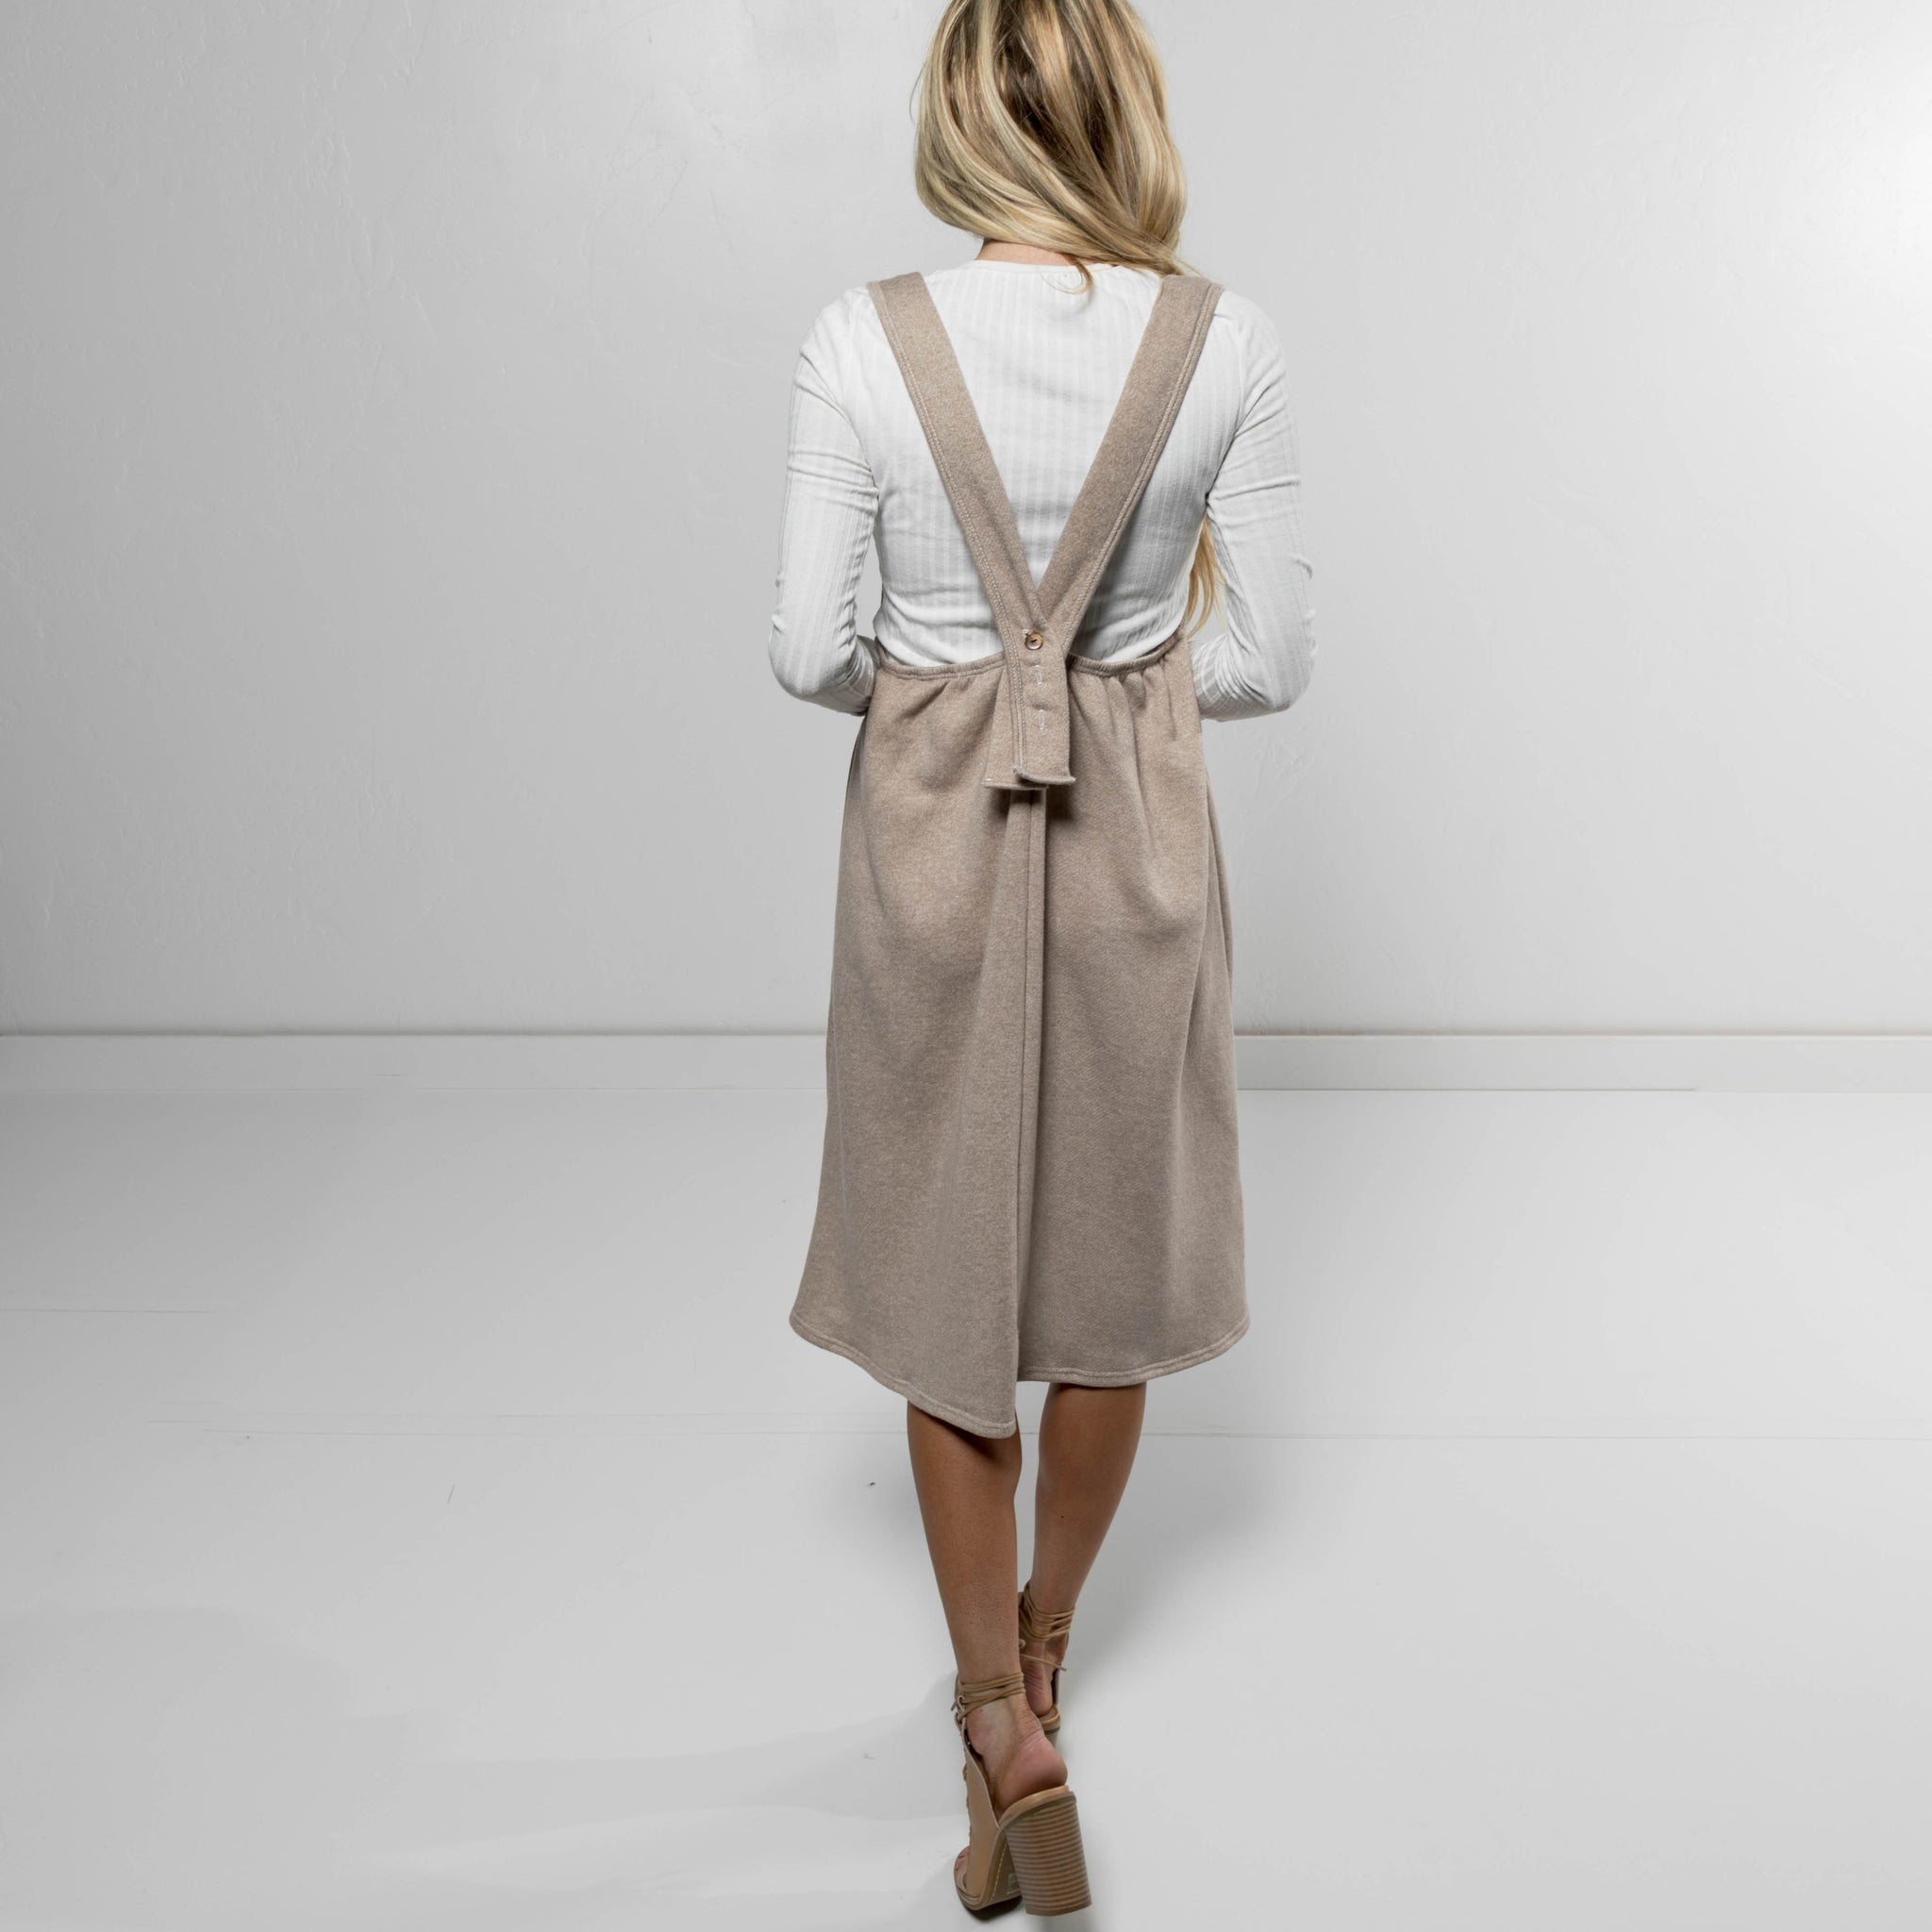 Aidrey Overall Dress in Oatmeal